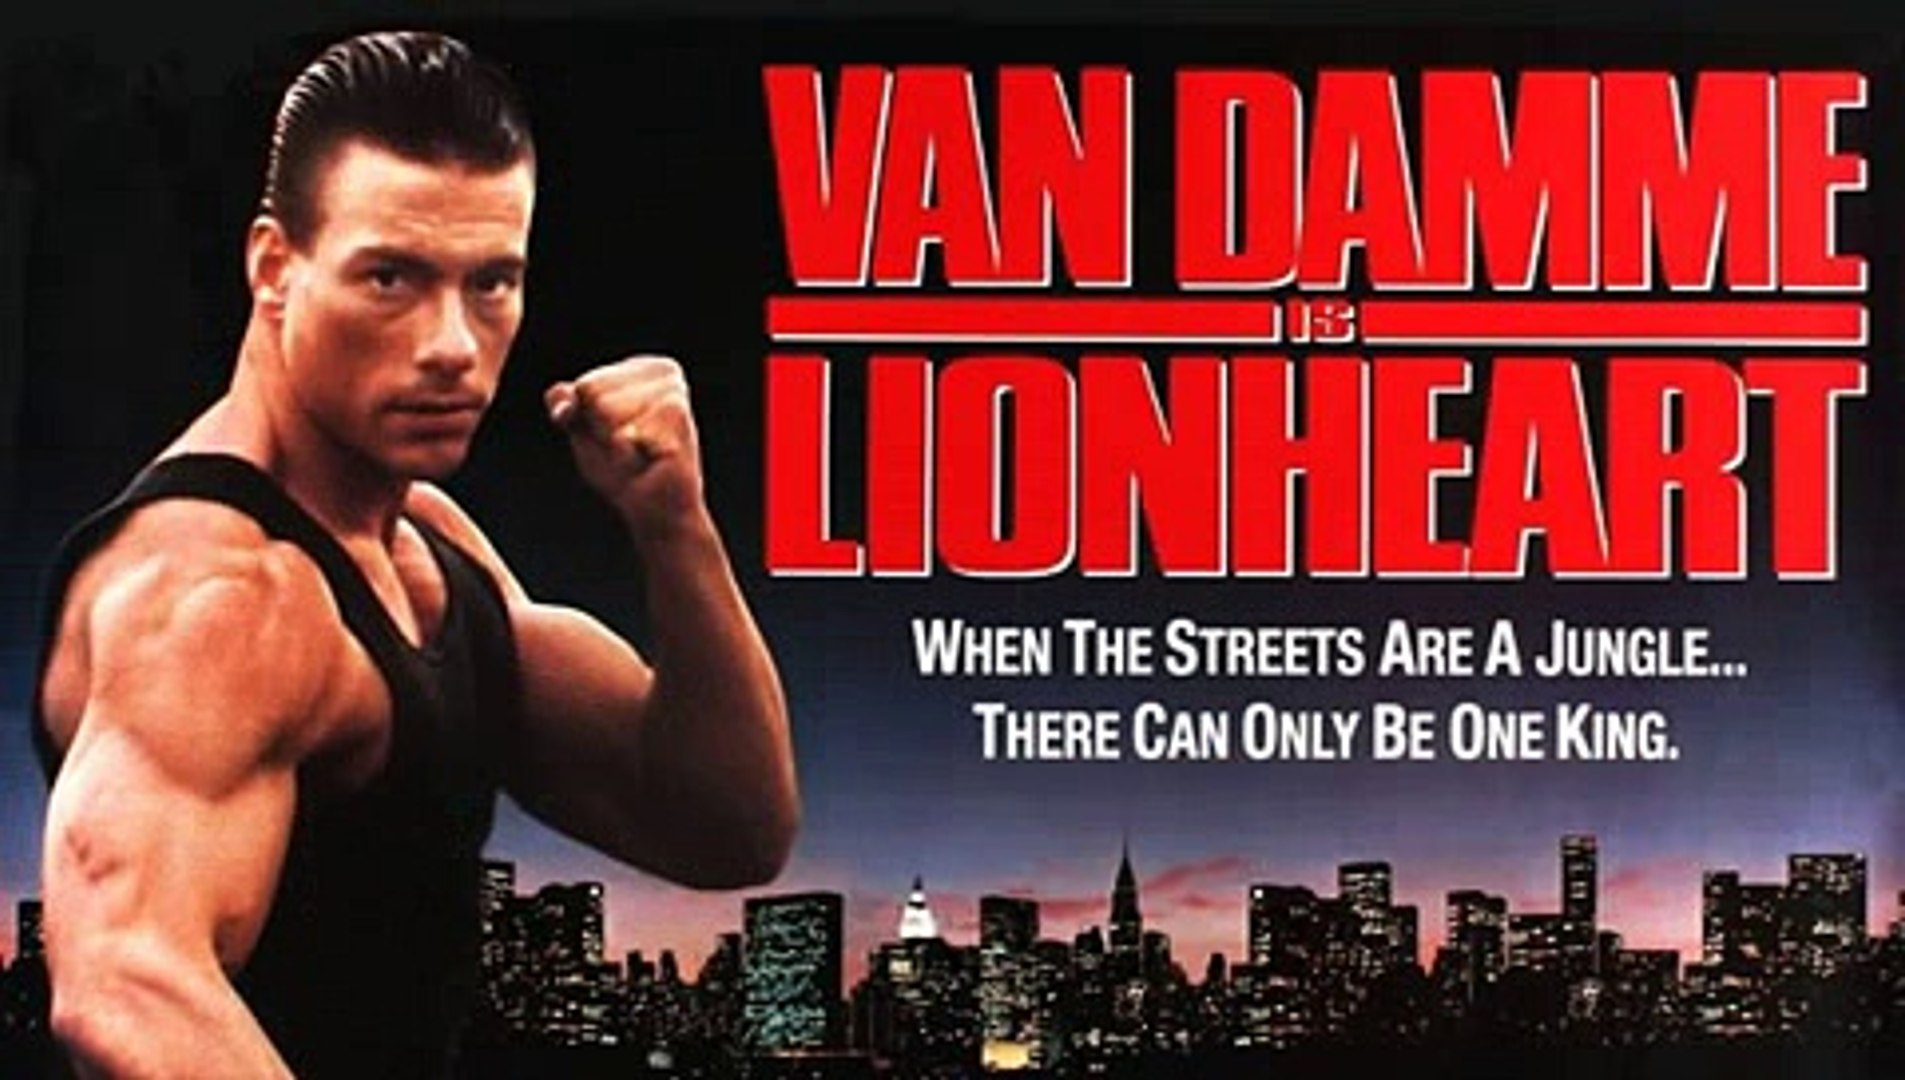 Download lionheart (1990) in 720p from yify yts | yify yts movies.